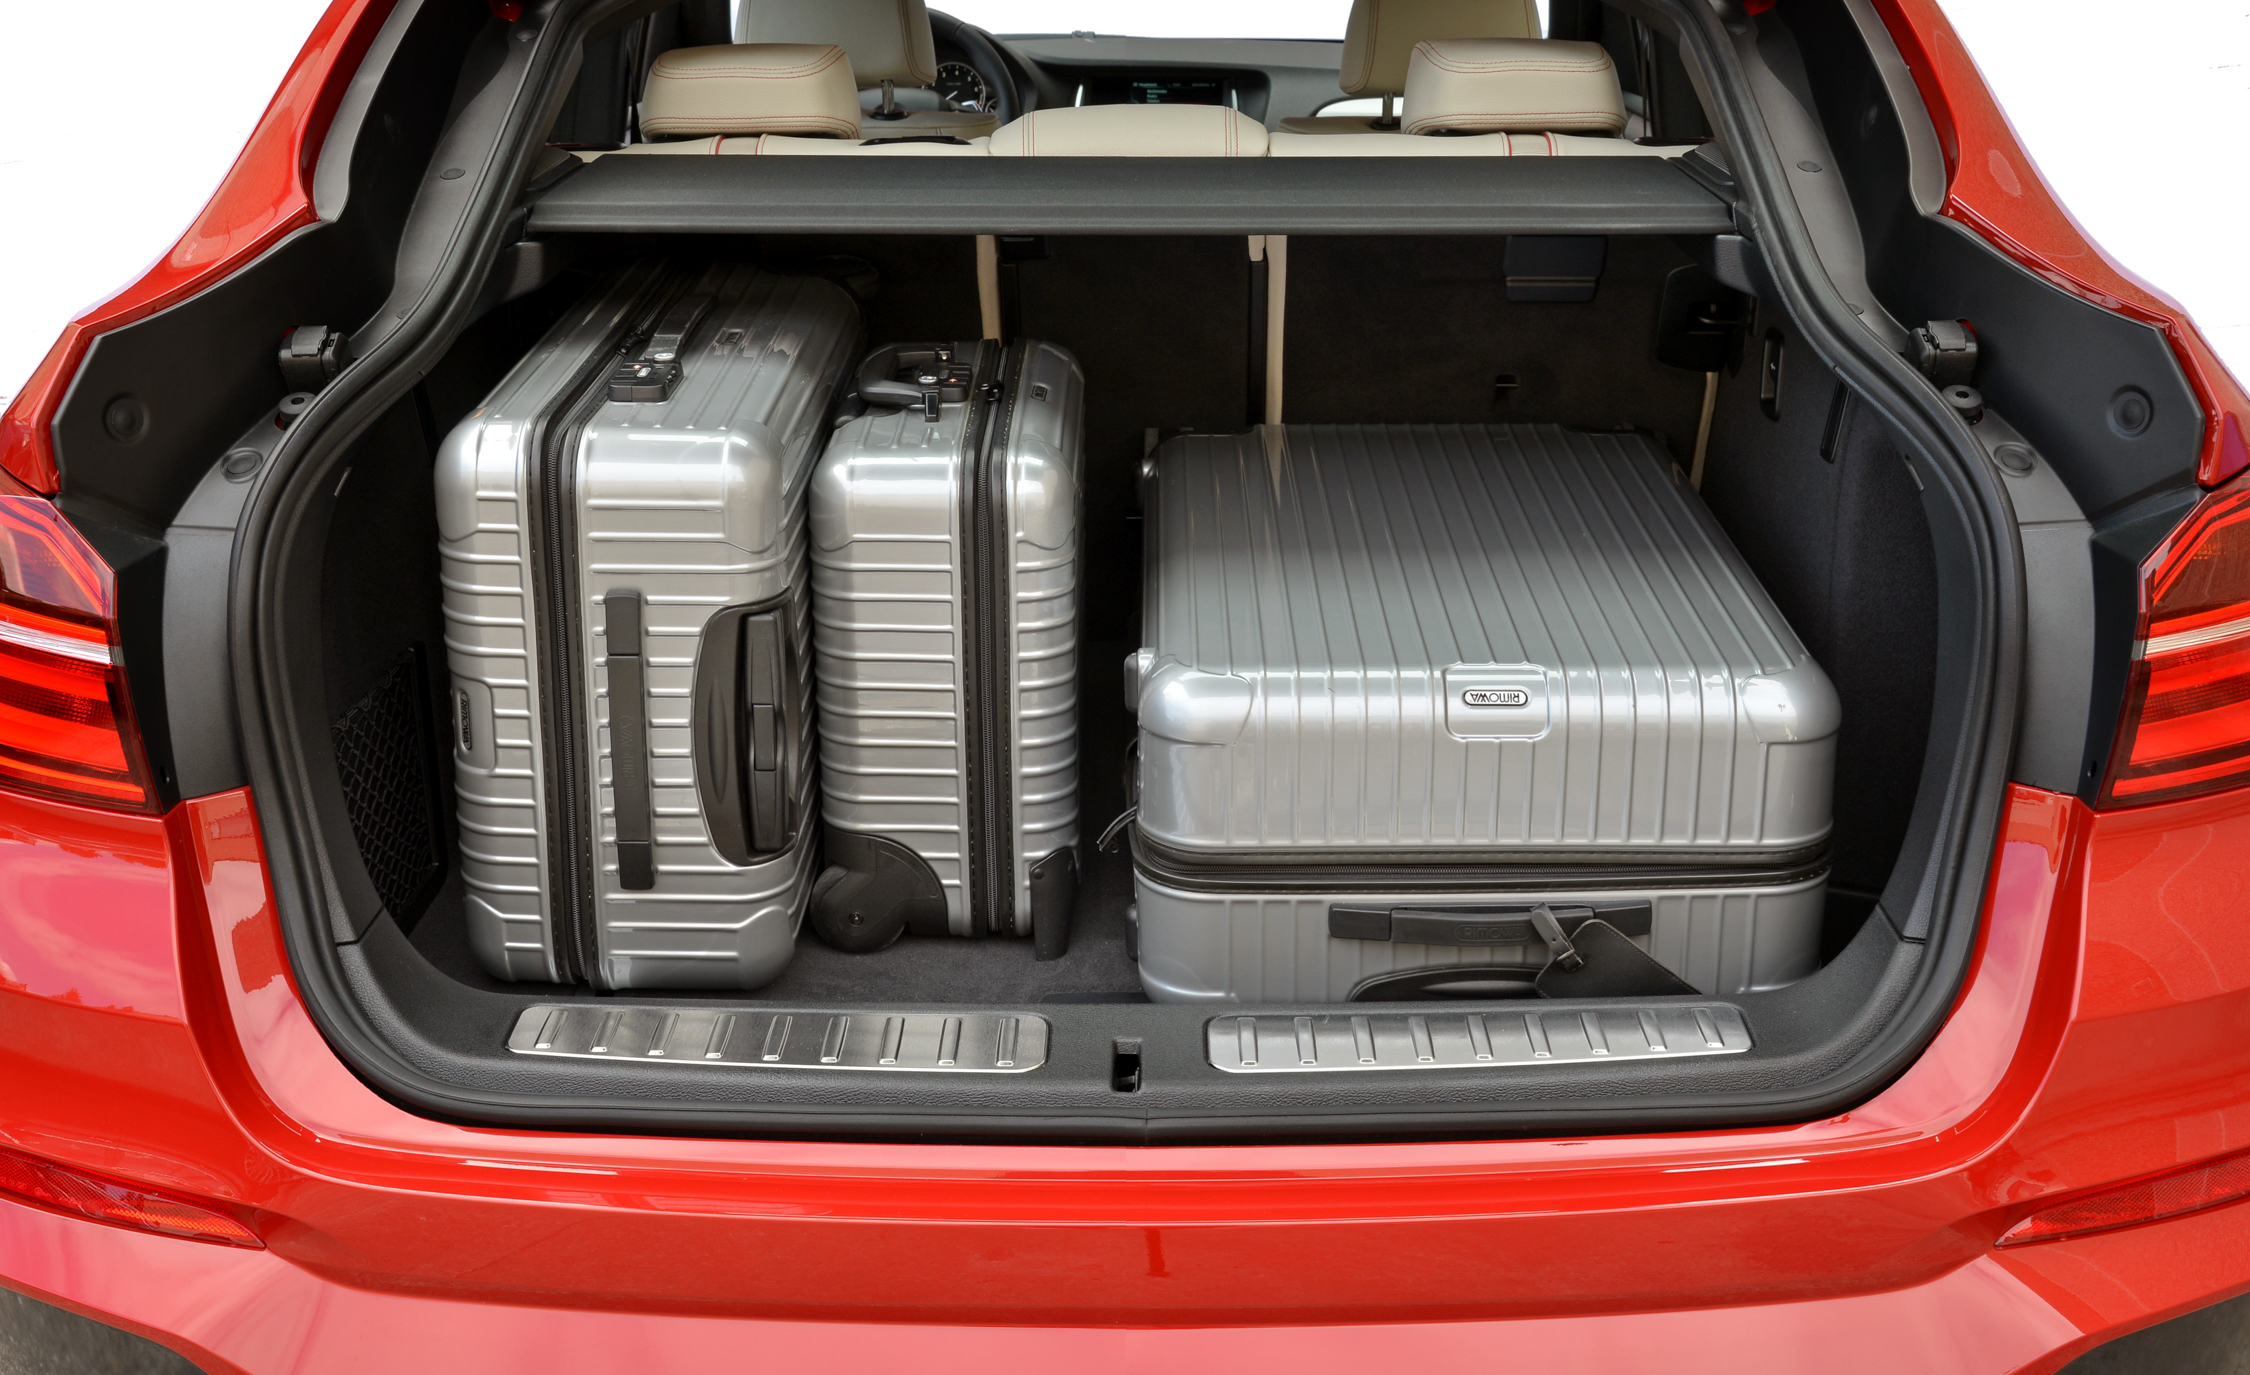 2015 BMW X4 XDrive35i Cargo Area (Photo 10 of 14)